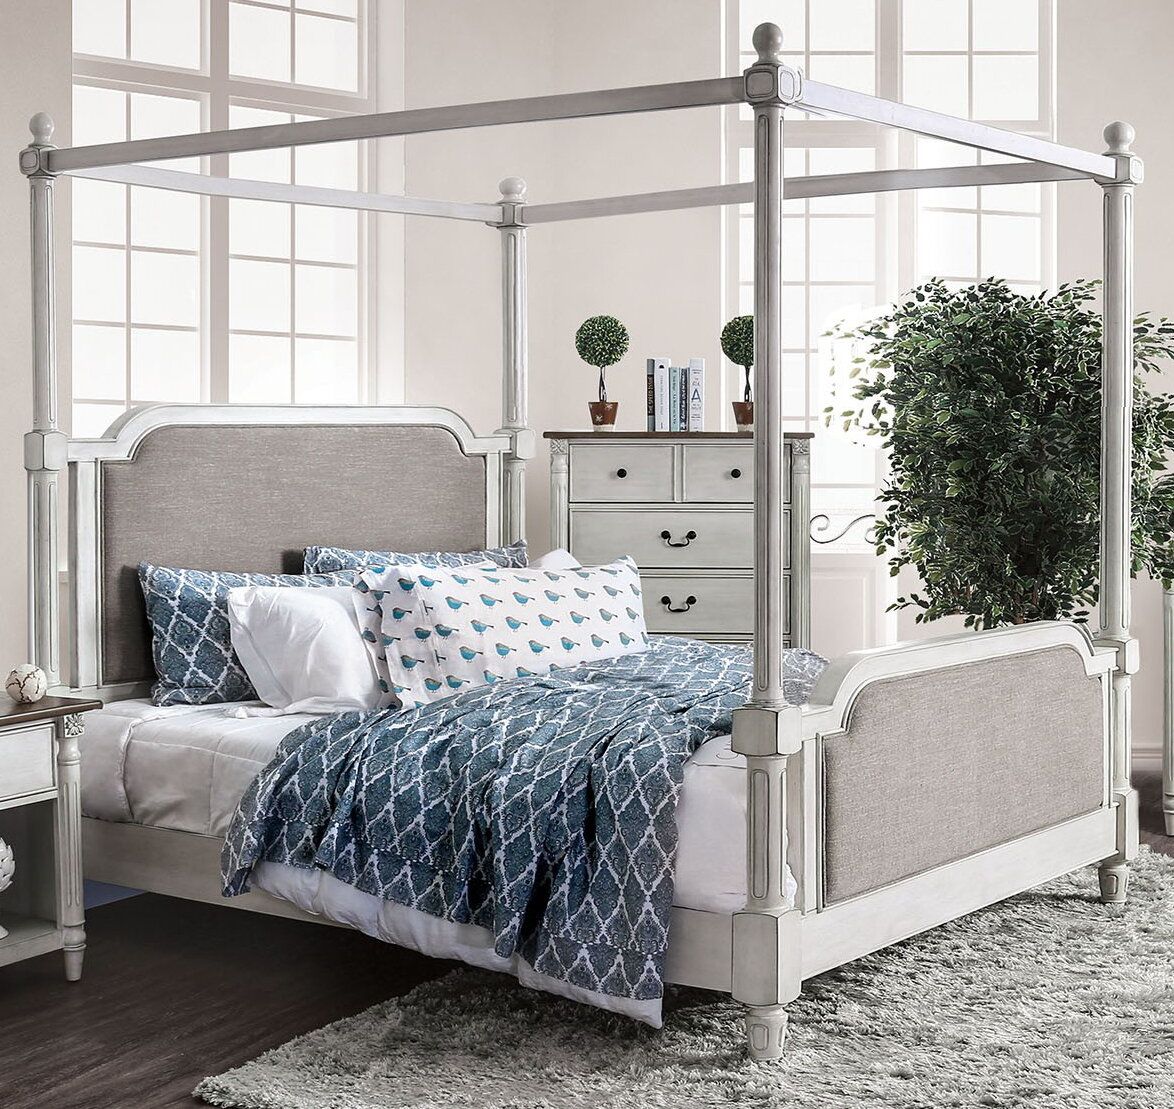 - Ophelia & Co. Austen Upholstered Canopy Bed Wayfair